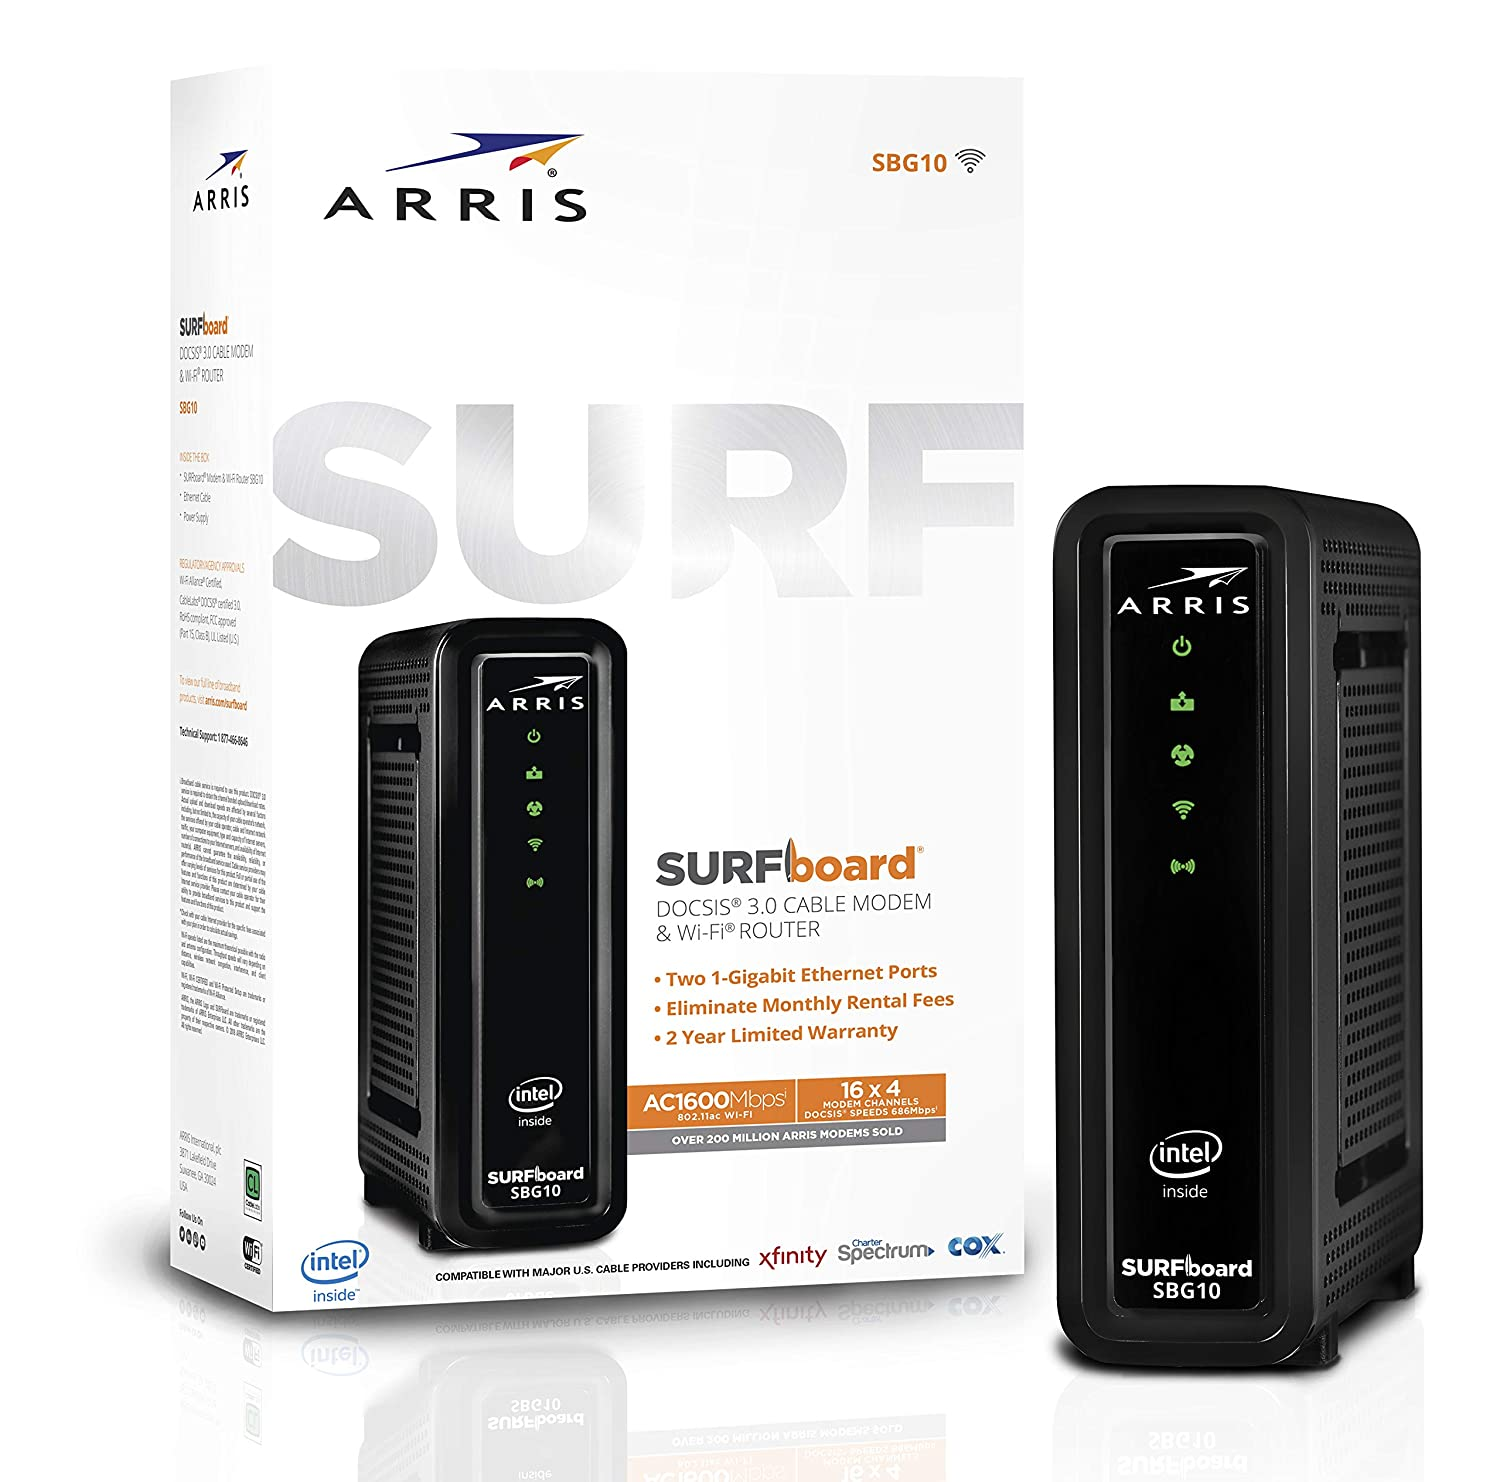 ARRIS Surfboard (16x4) DOCSIS 3.0 Cable Modem Plus AC1600 Dual Band Wi-Fi Router, 686 Mbps Max Speed, Certified for Comcast Xfinity, Spectrum, Cox & More (SBG10)